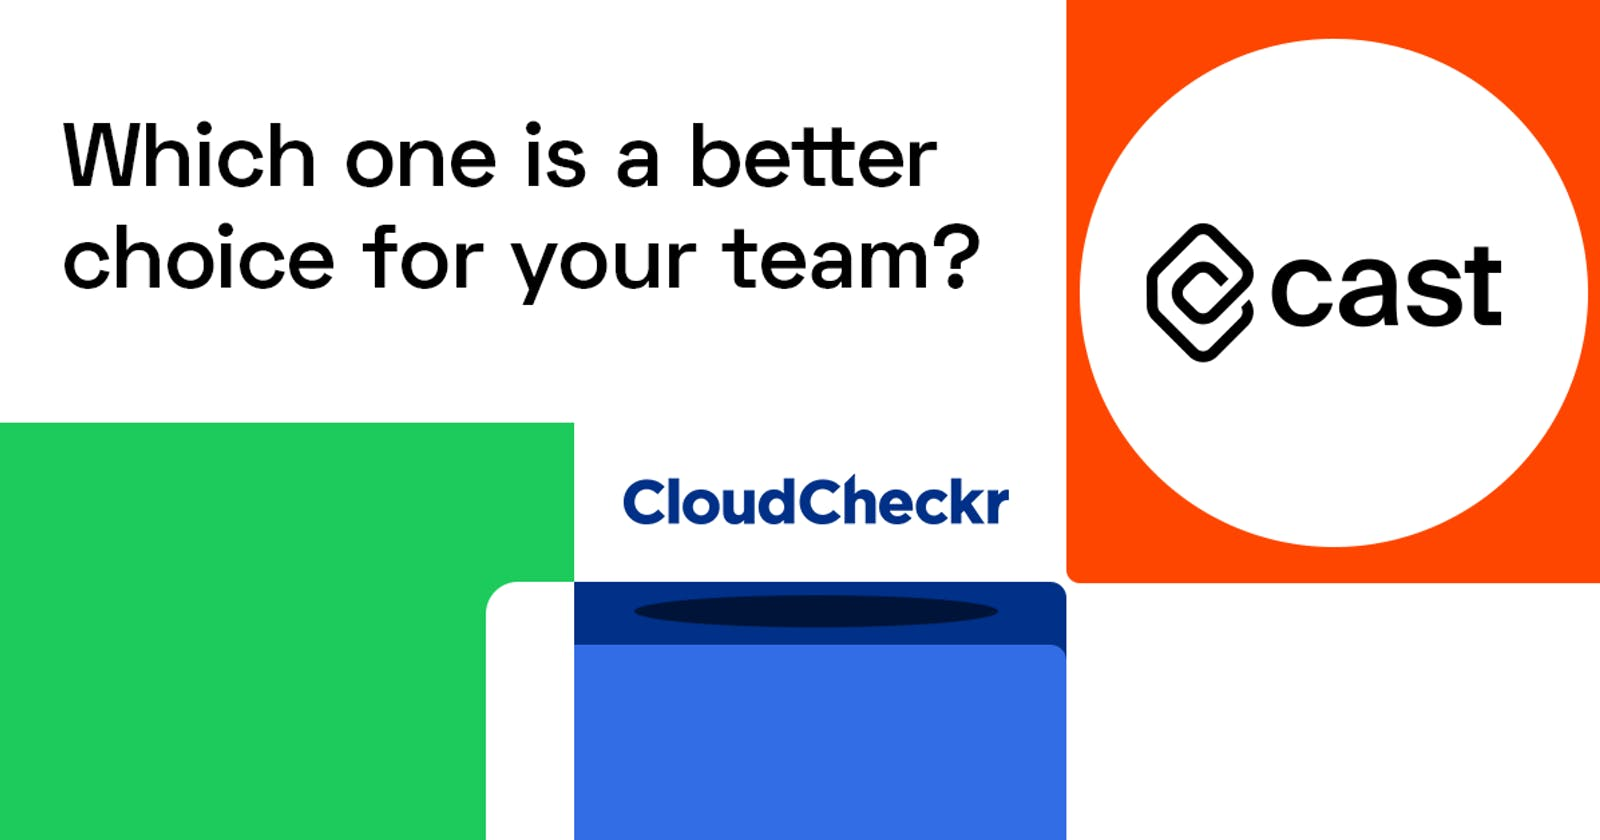 CAST AI vs. CloudCheckr: Which one is a better choice for your team?